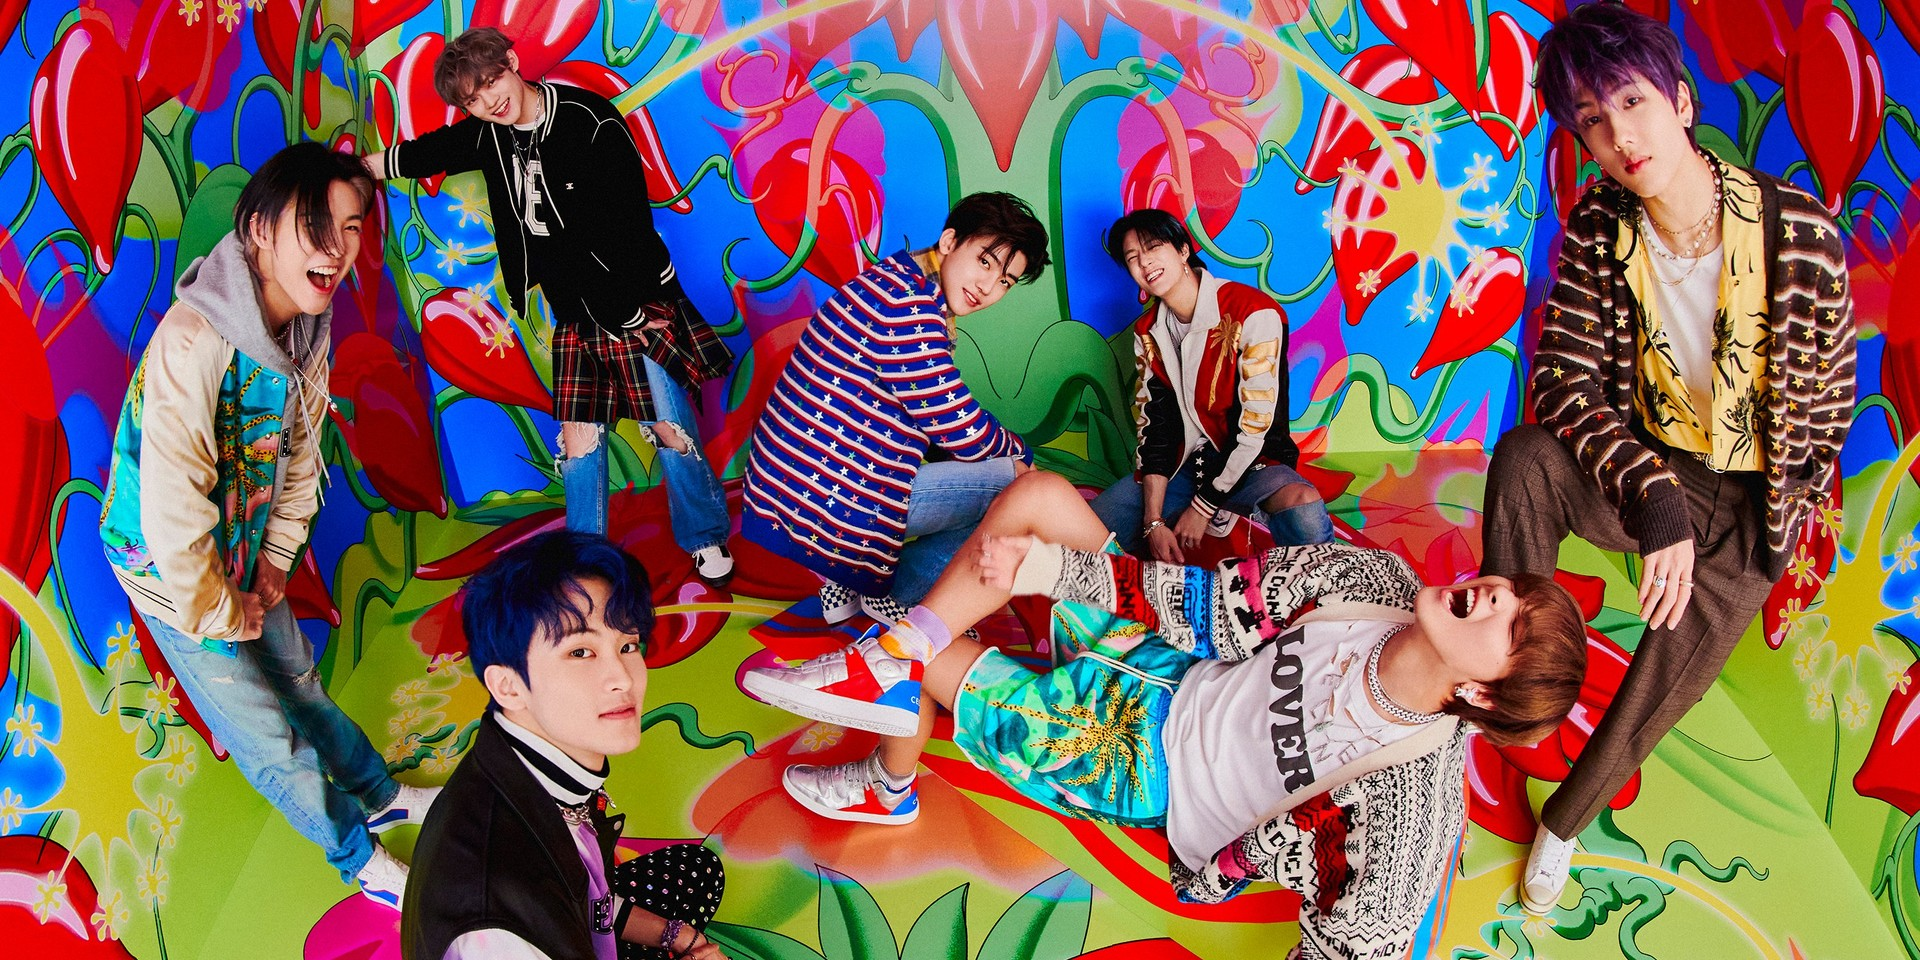 NCT DREAM's first full-length album 맛 (Hot Sauce) is coming this May